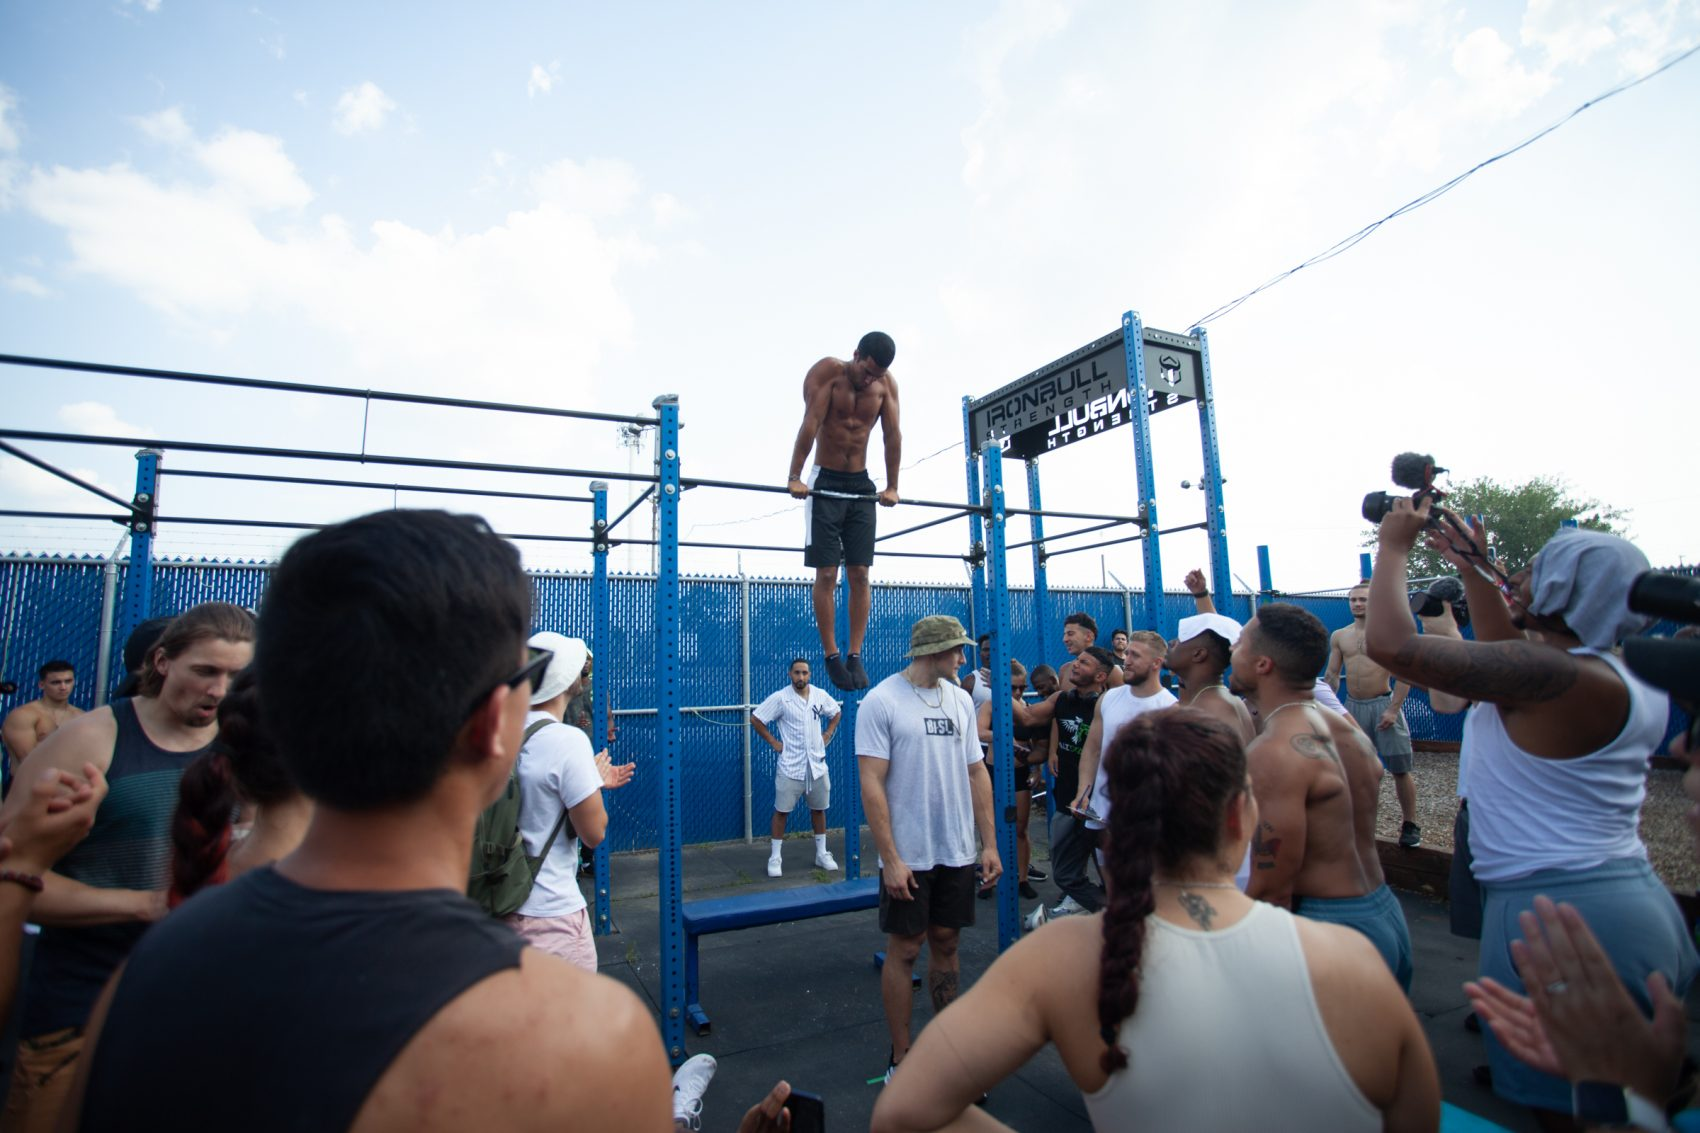 Montreal Calisthenics Games Pictures – Aug. 21st, 2021